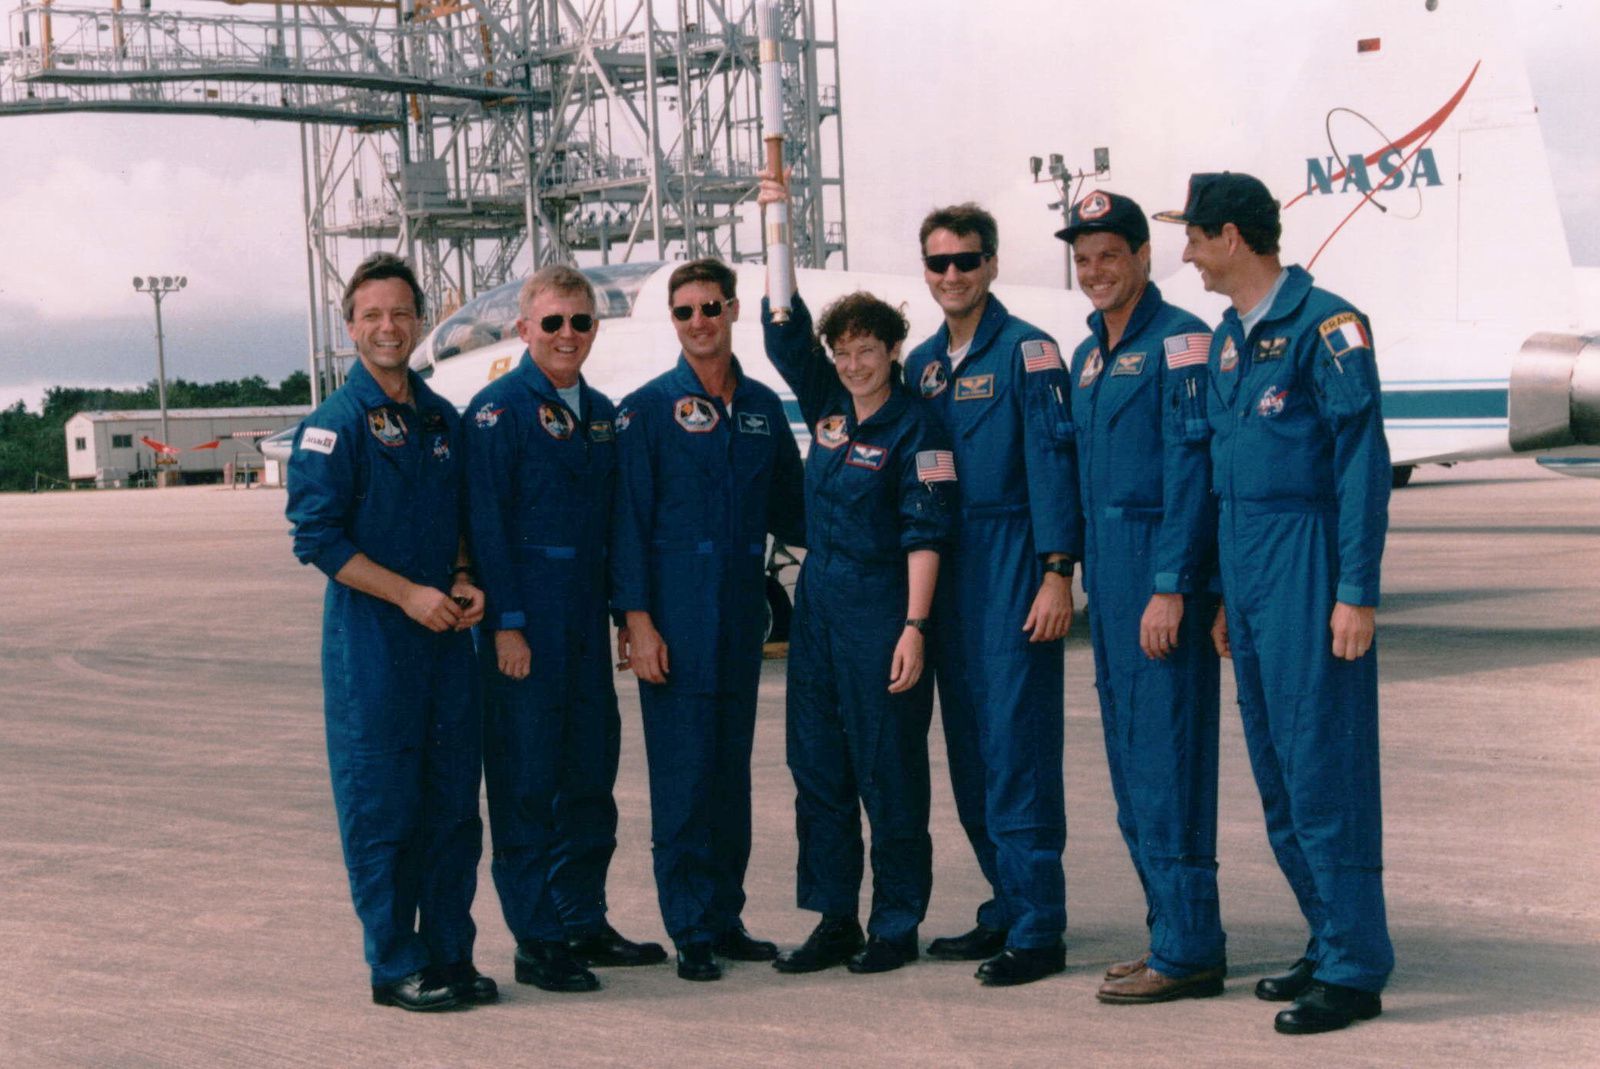 STS-78 - Colombia - 1996 - Flamme olympique - Olympic torch - Equipage - Crew - NASA - Jeux olympiques Atlanta - Jean-Jacques Favier